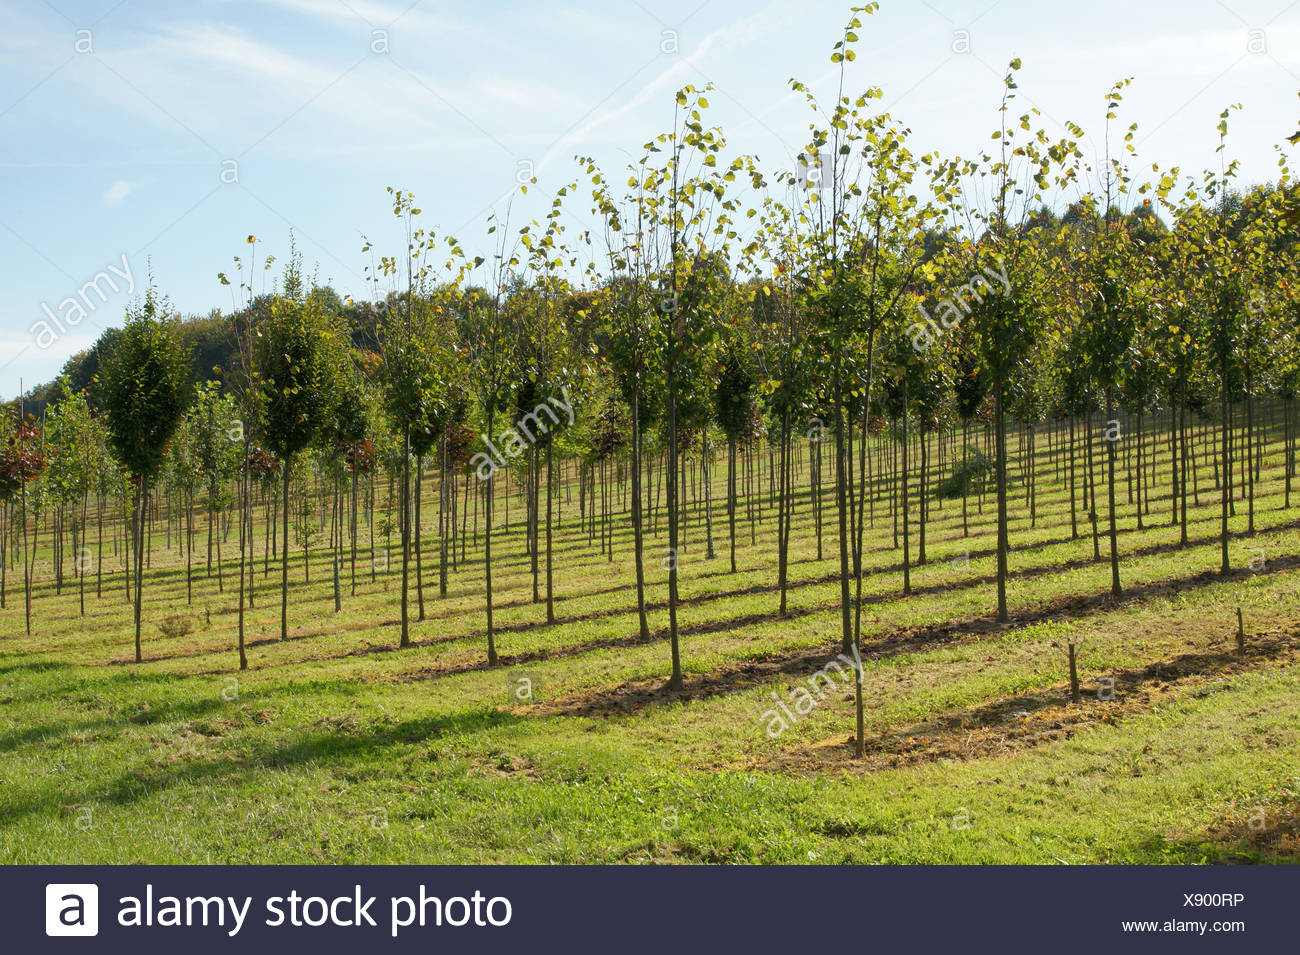 Limes in a tree nursery Stock Photo